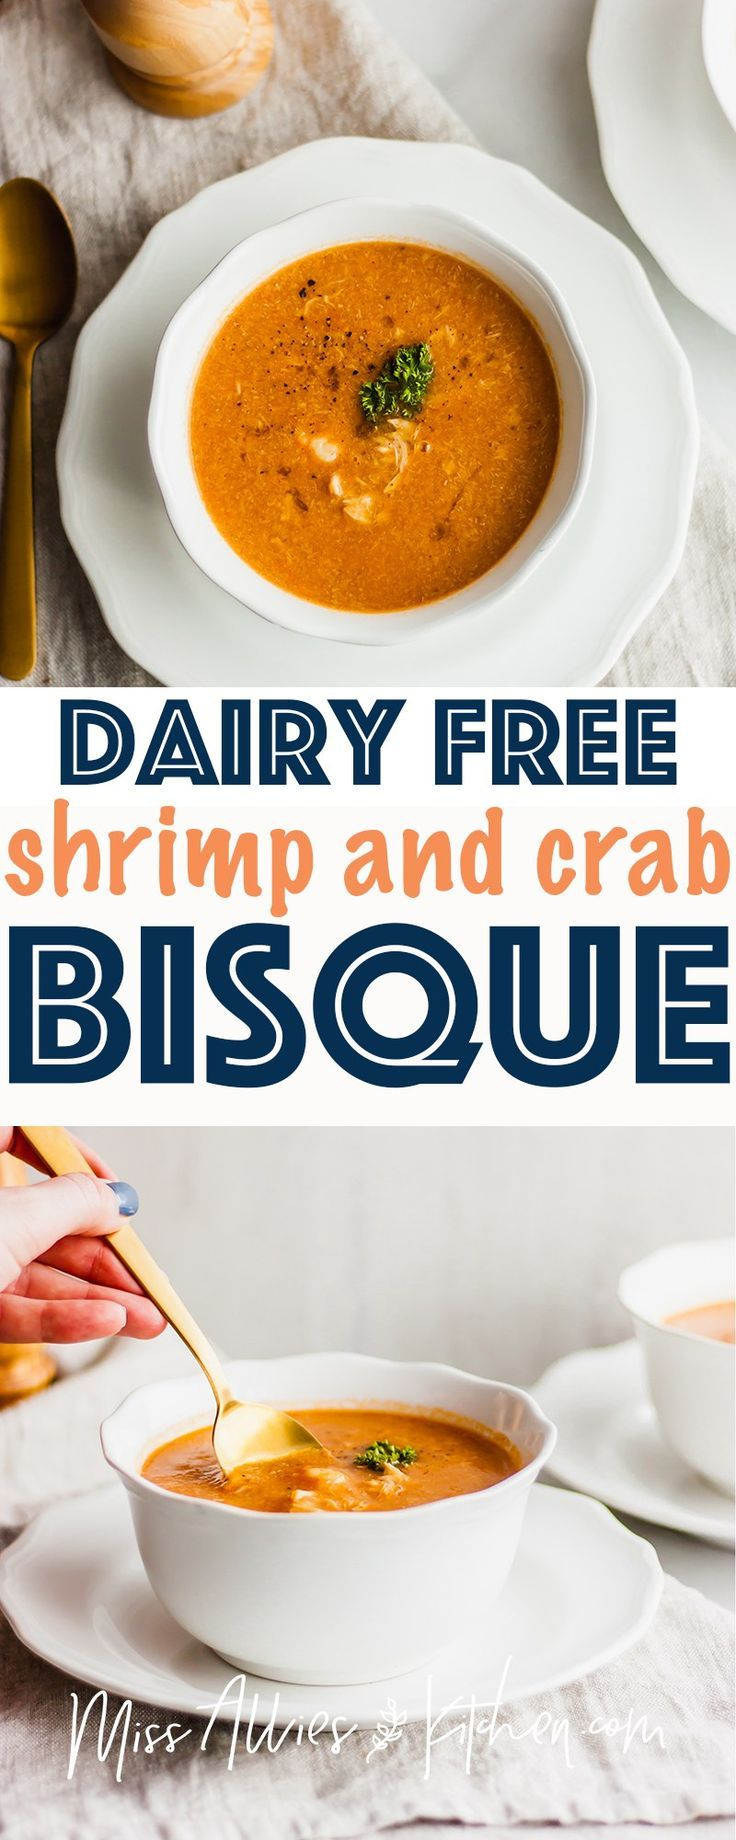 Dairy Free Shrimp and Crab Bisque - one of the most decadent dairy free recipes you can make. This bisque can be a side dish or a meal! We use coconut milk and tomato paste to create a rich color and flavor. This would be the perfect entertaining recipe and makes a great healthy soup option chock full of seafood! #dairyfree #seafood #shrimp #crab #bisque #dairyfreebisque #glutenfree #soup